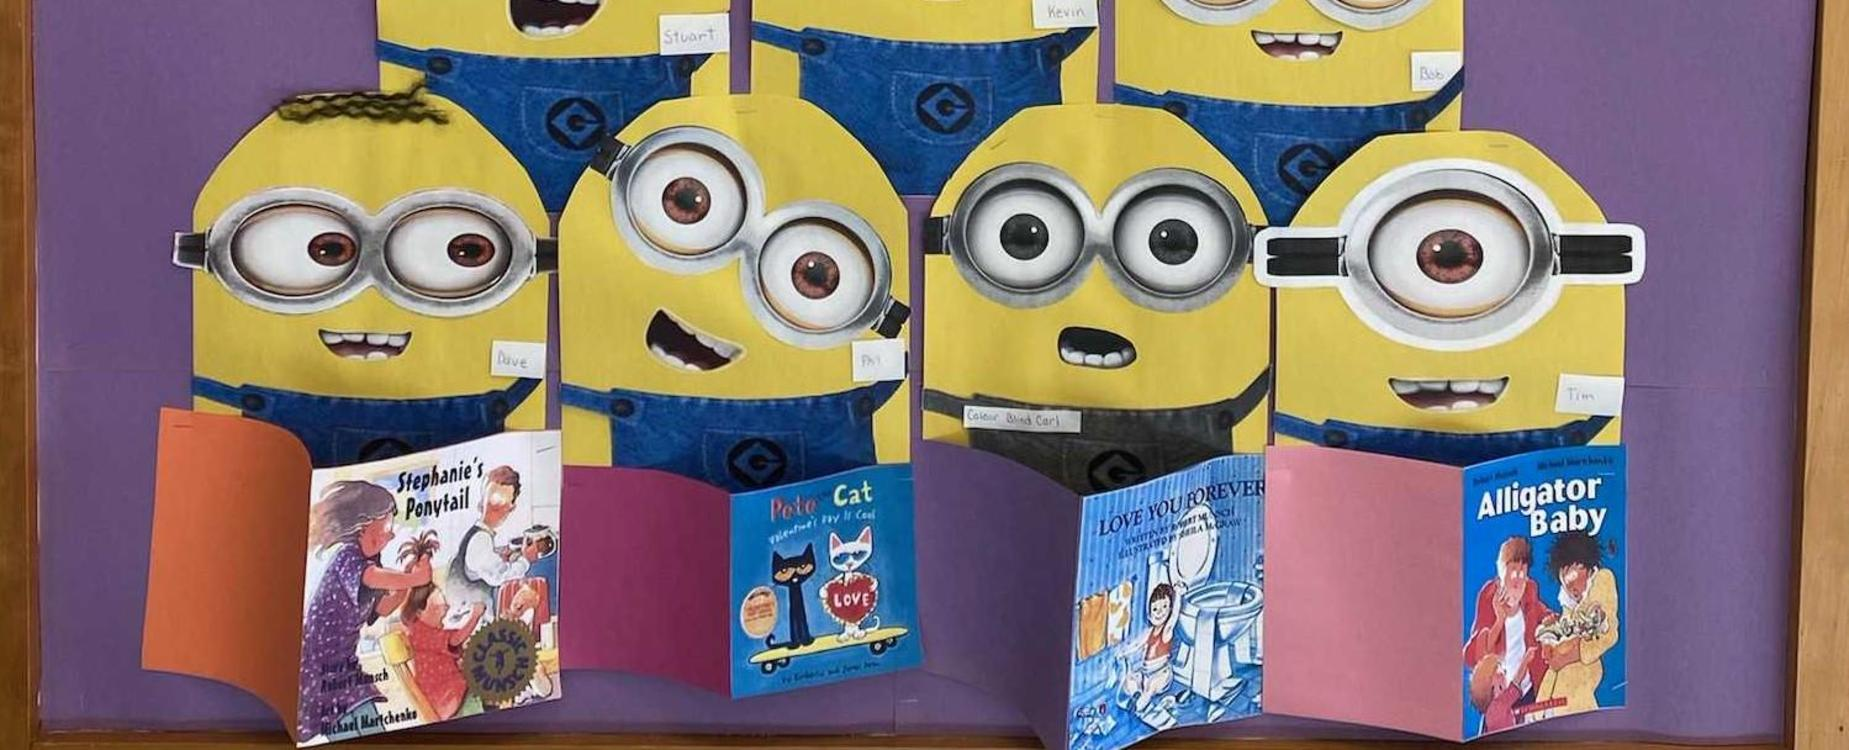 There's a minion reasons to read!